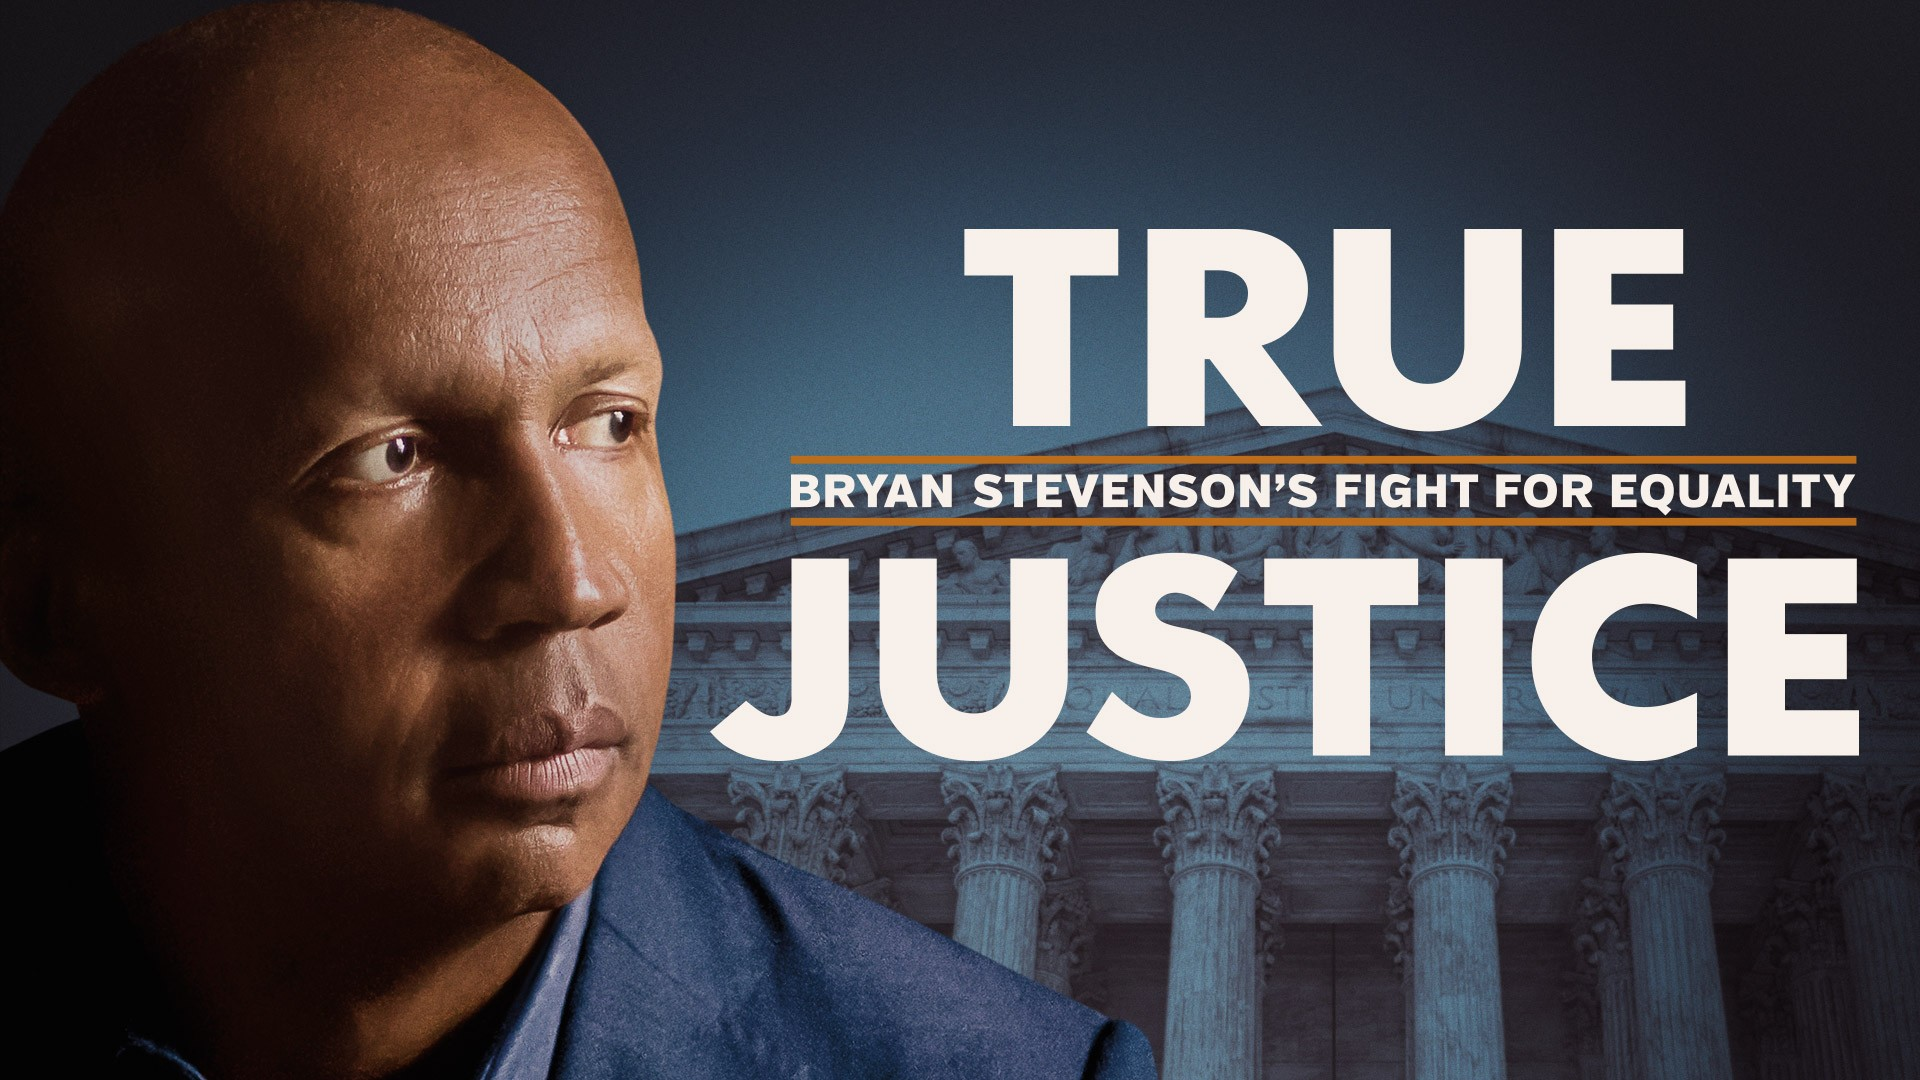 HBO Image film image of Bryan Stevenson